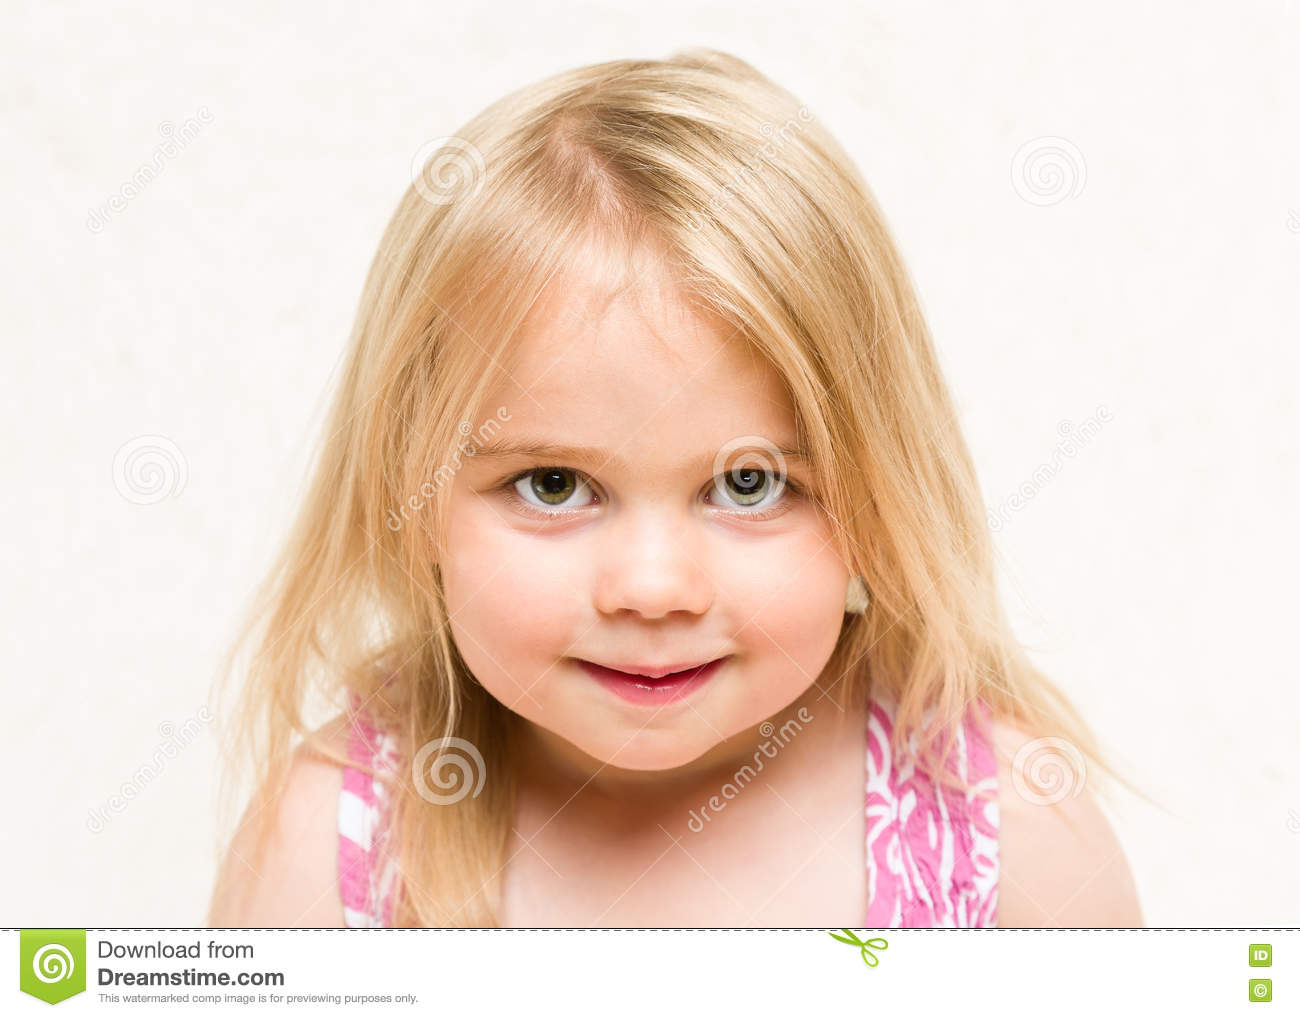 Ortrait of beautiful blonde toddler baby girl with cheeky grin